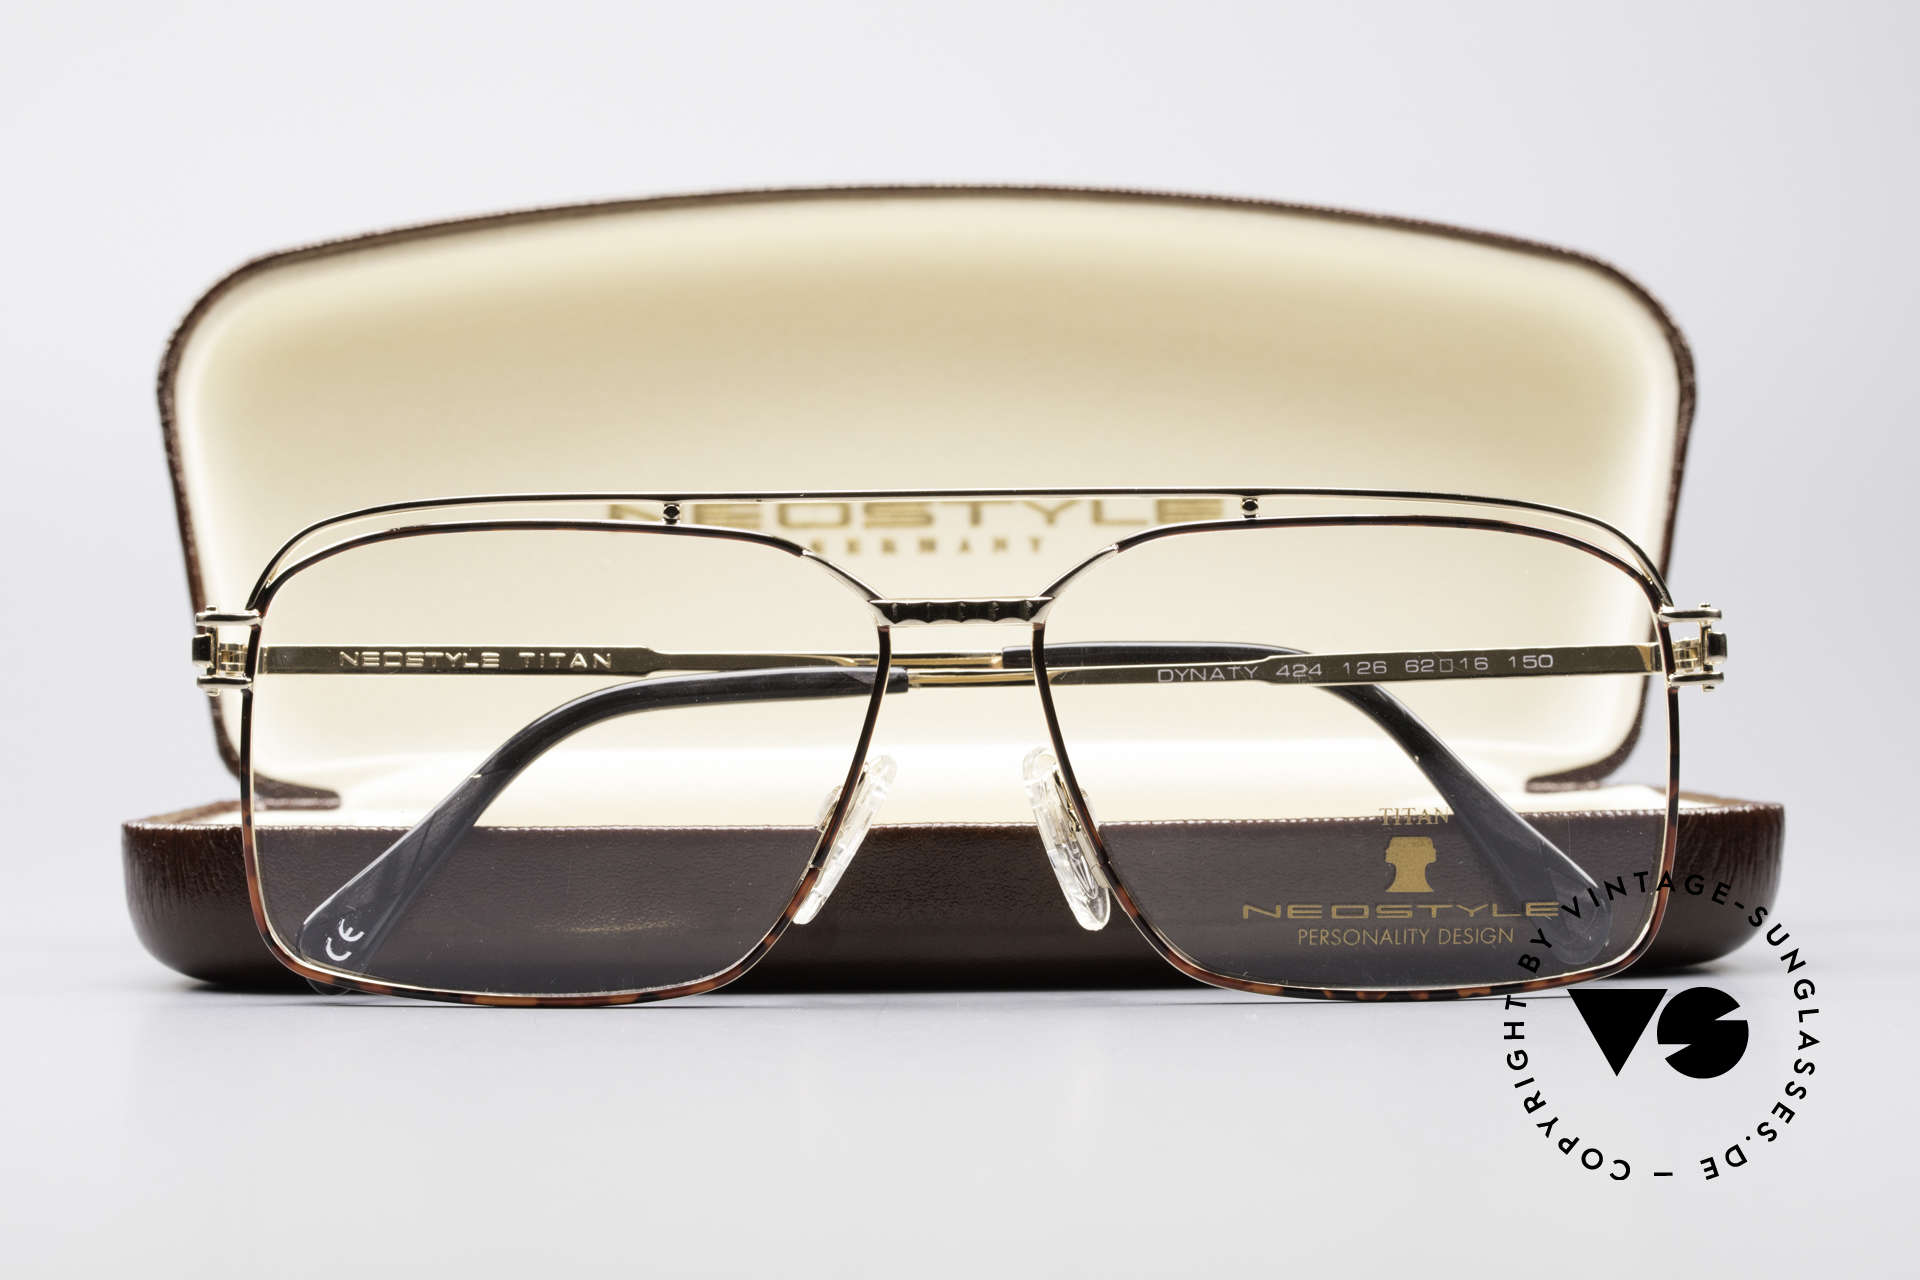 Neostyle Dynasty 424 - XL 80's Titanium Men's Frame, NO RETRO glasses, just a stylish old ORIGINAL, Made for Men